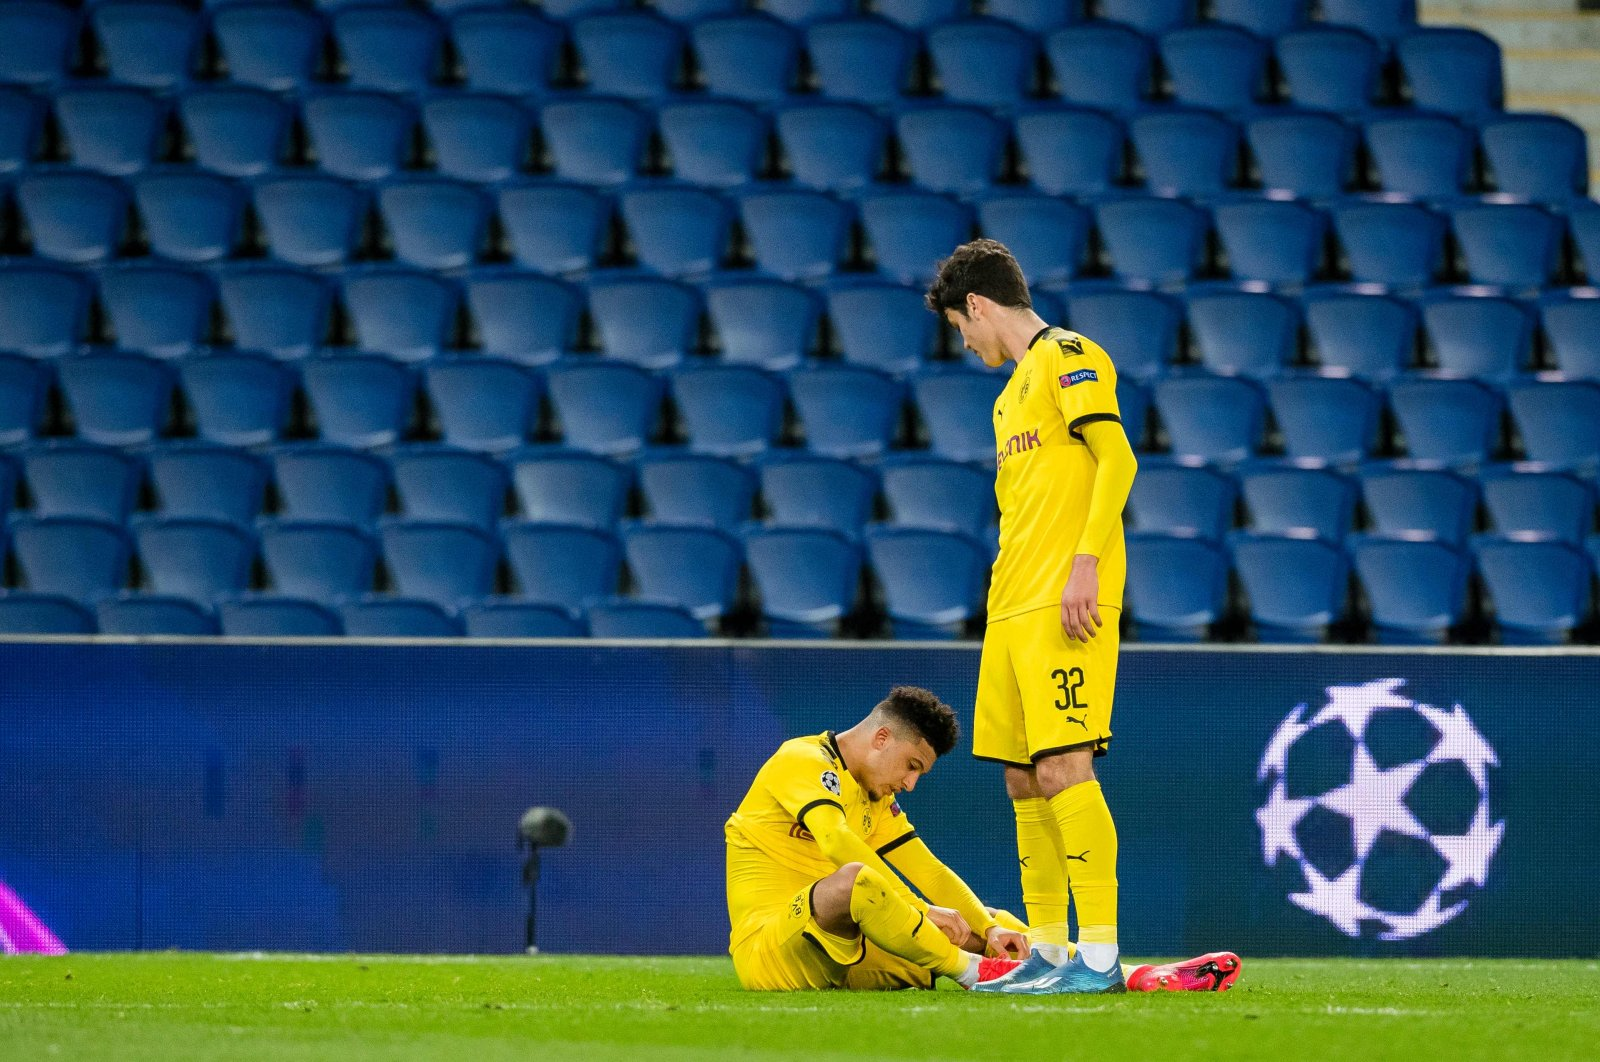 Dortmund's midfielders Jadon Sancho (L) and Giovanni Reyna react after losing the Champions League match against Paris Saint-Germain, Paris, March 11, 2020. (AFP Photo)